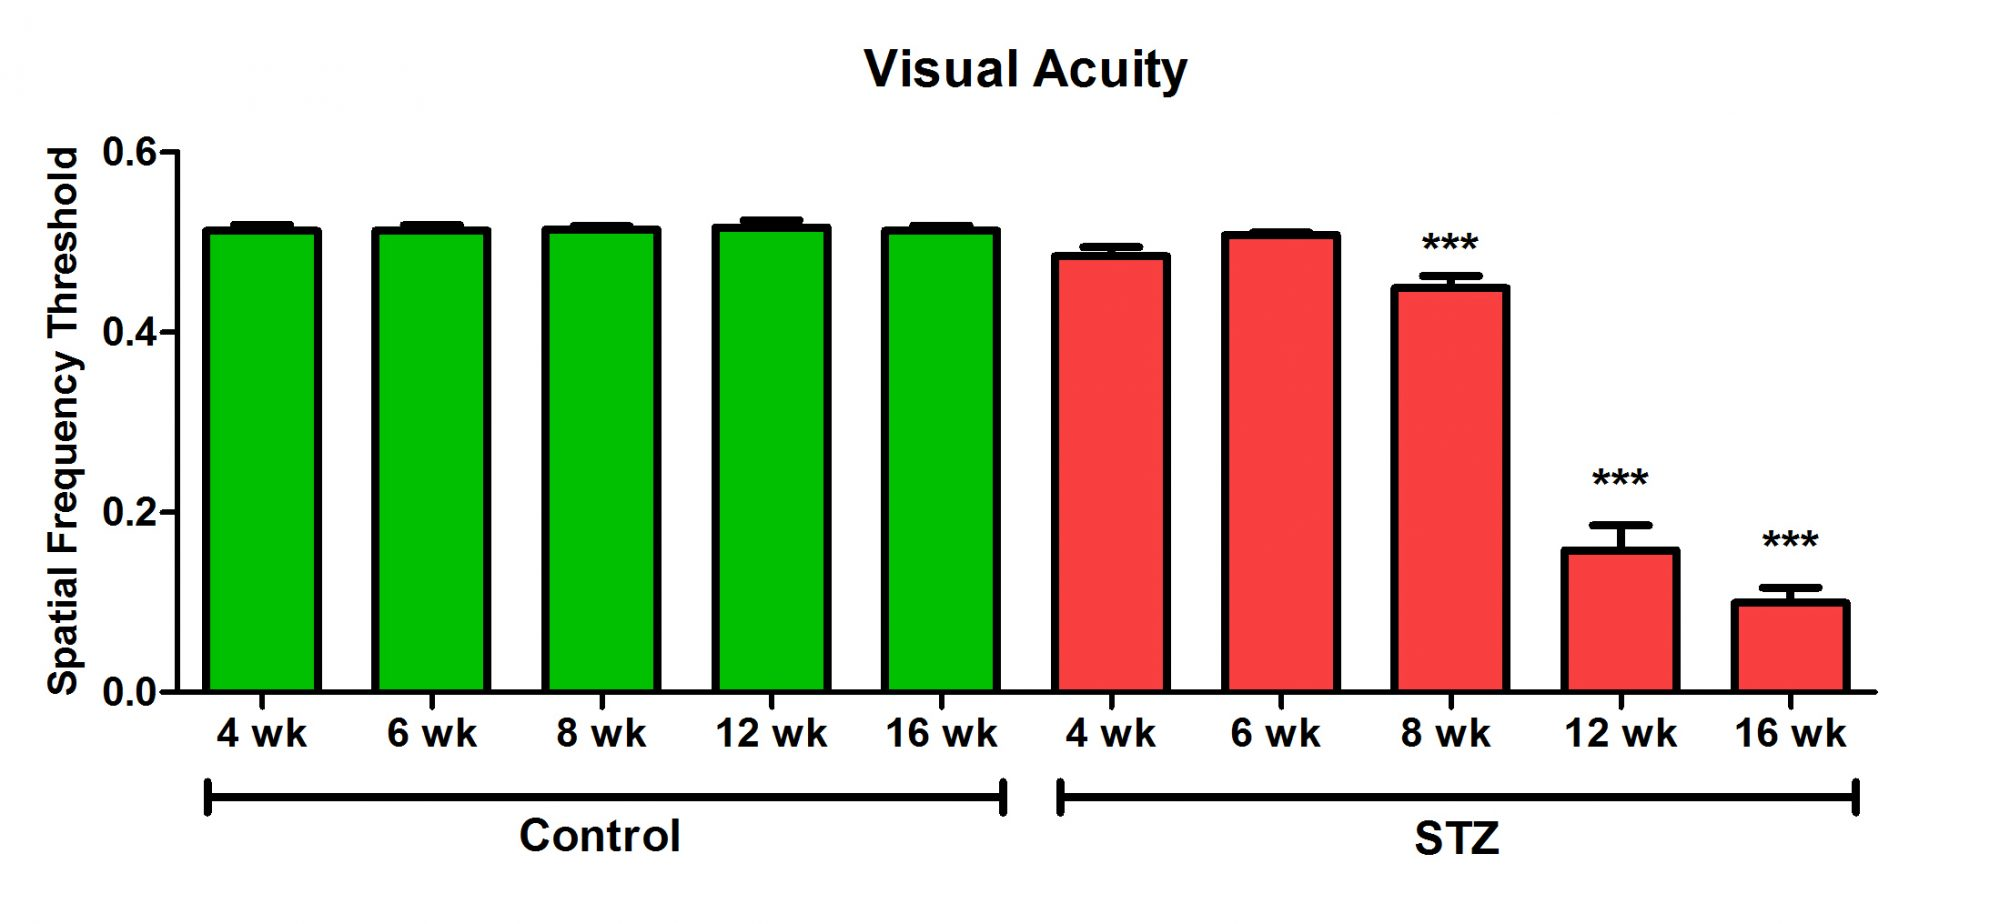 visual acuity in STZ